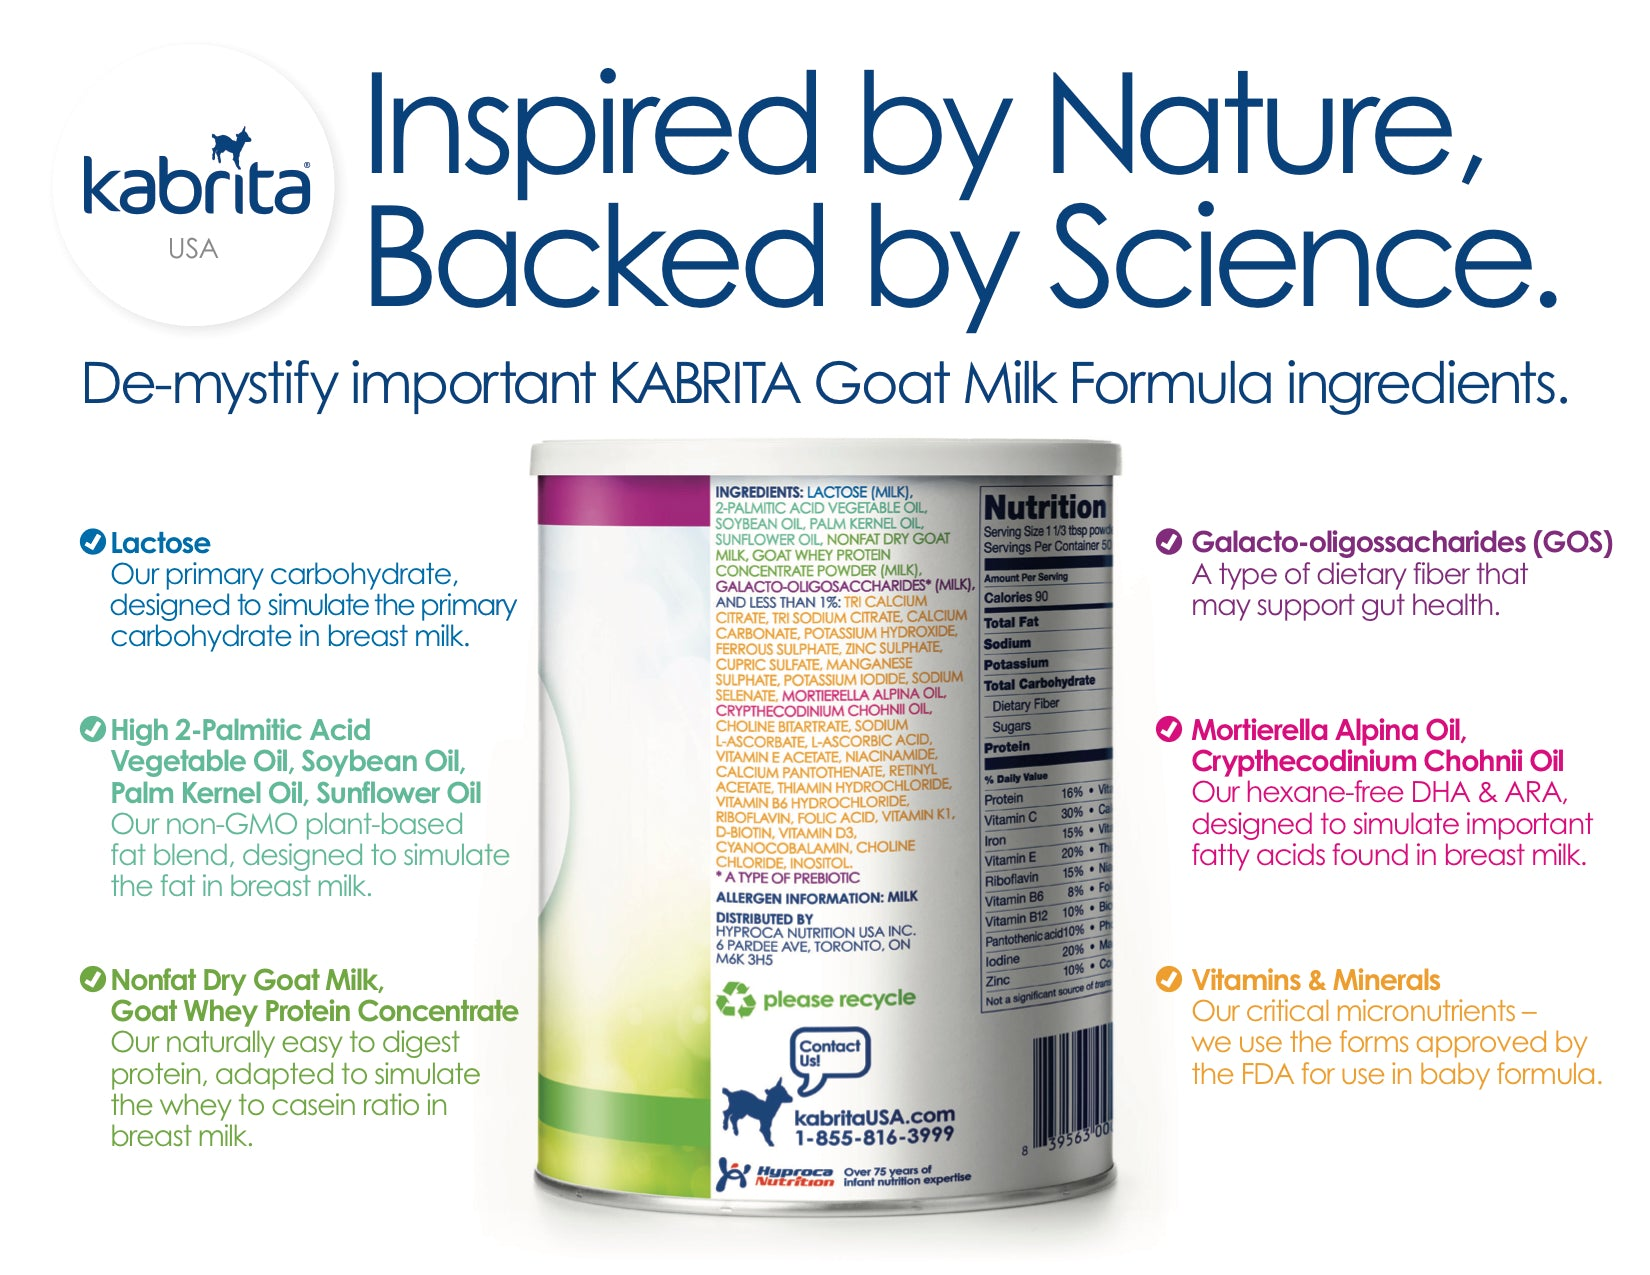 Inspired by Nature, Backed by Science. De-mystify important KABRITA Goat Milk Formula ingredients